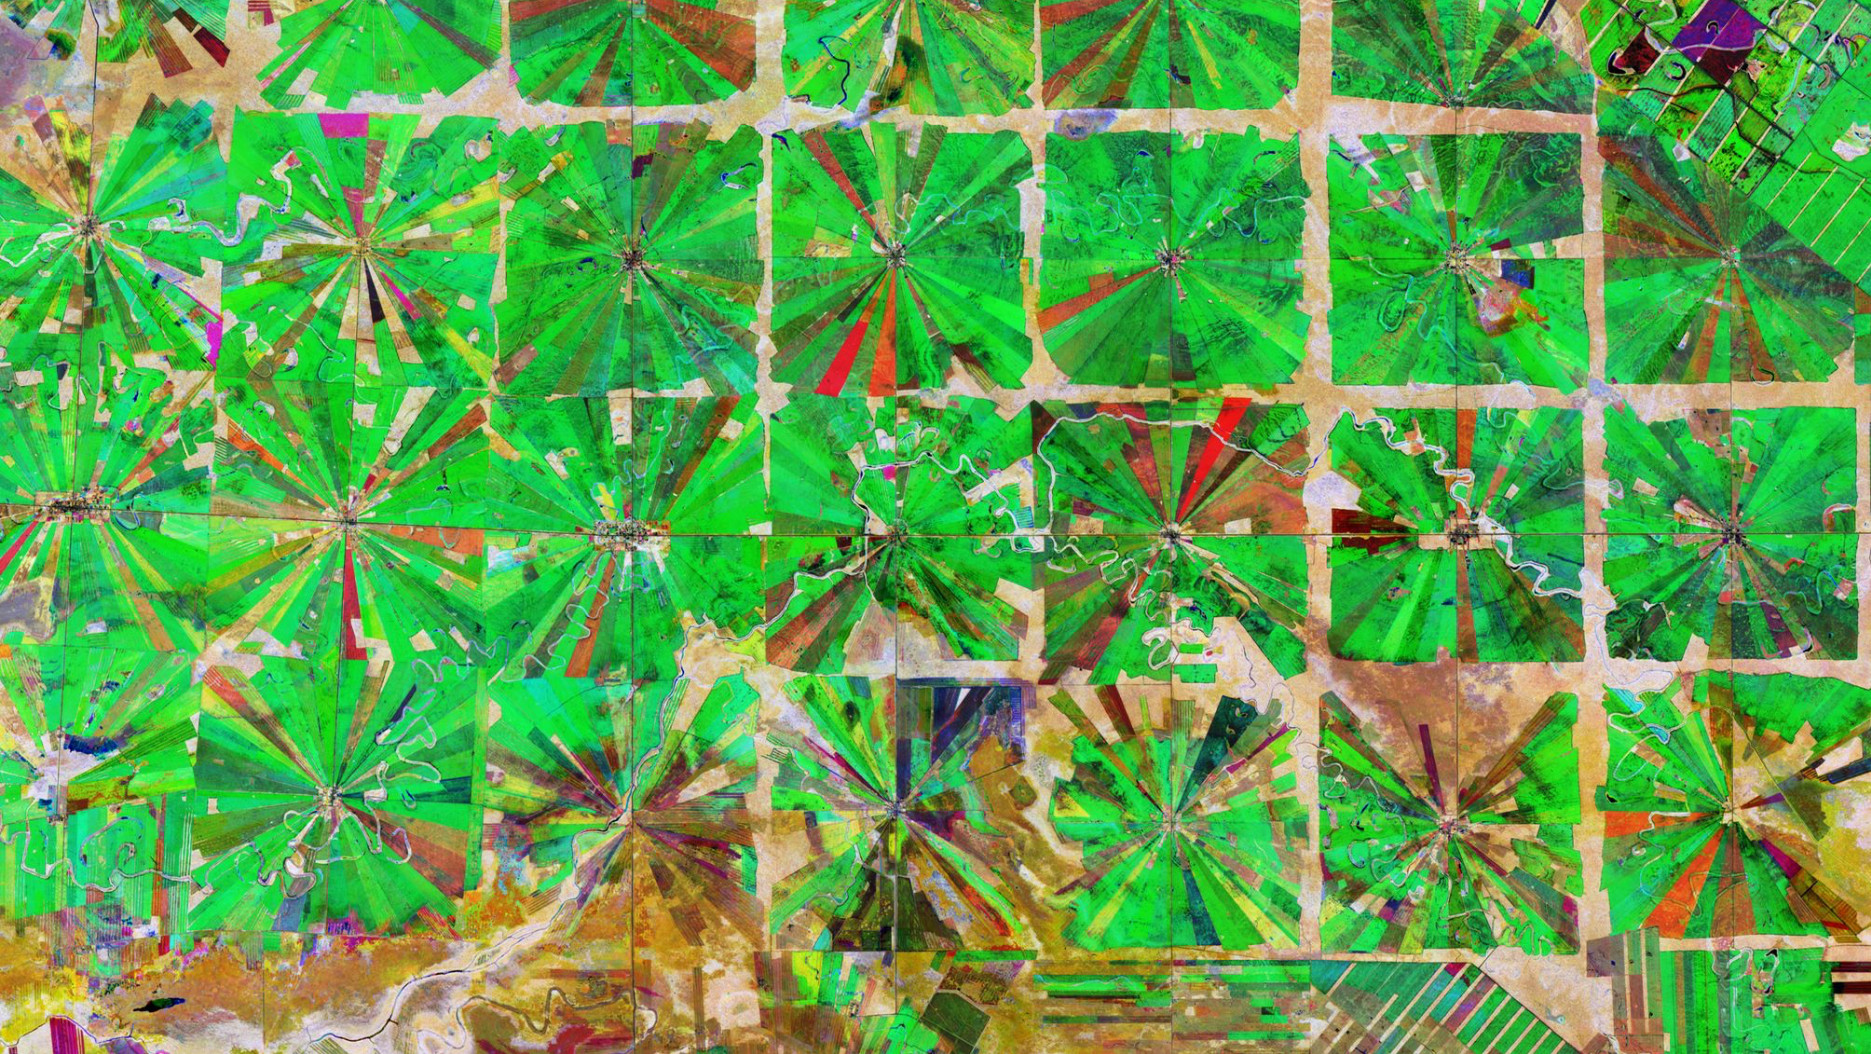 Copernicus Sentinel-2 image of agriculture plantations in the Santa Cruz Department of Bolivia. Contains modified Copernicus Sentinel data (2019) processed by ESA